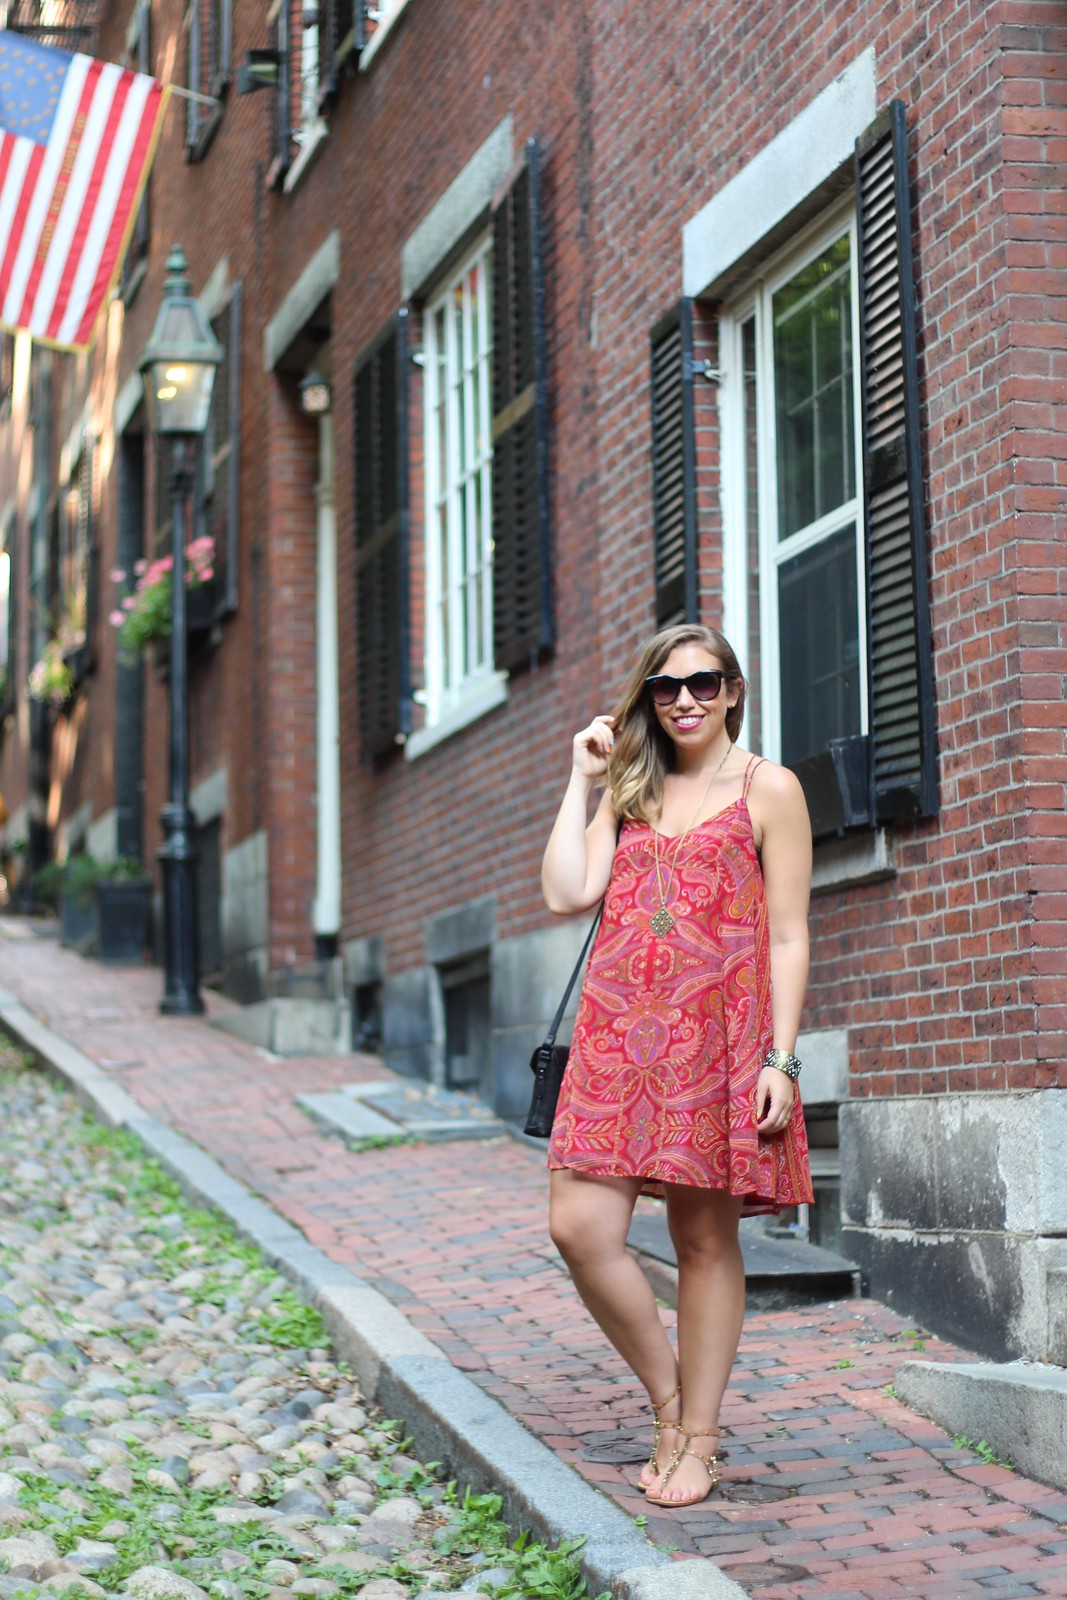 Paisley Swing Dress on Acorn St in Boston | A Look Back at 10 Years of Blogging Living After Midnite Blogger Jackie Giardina